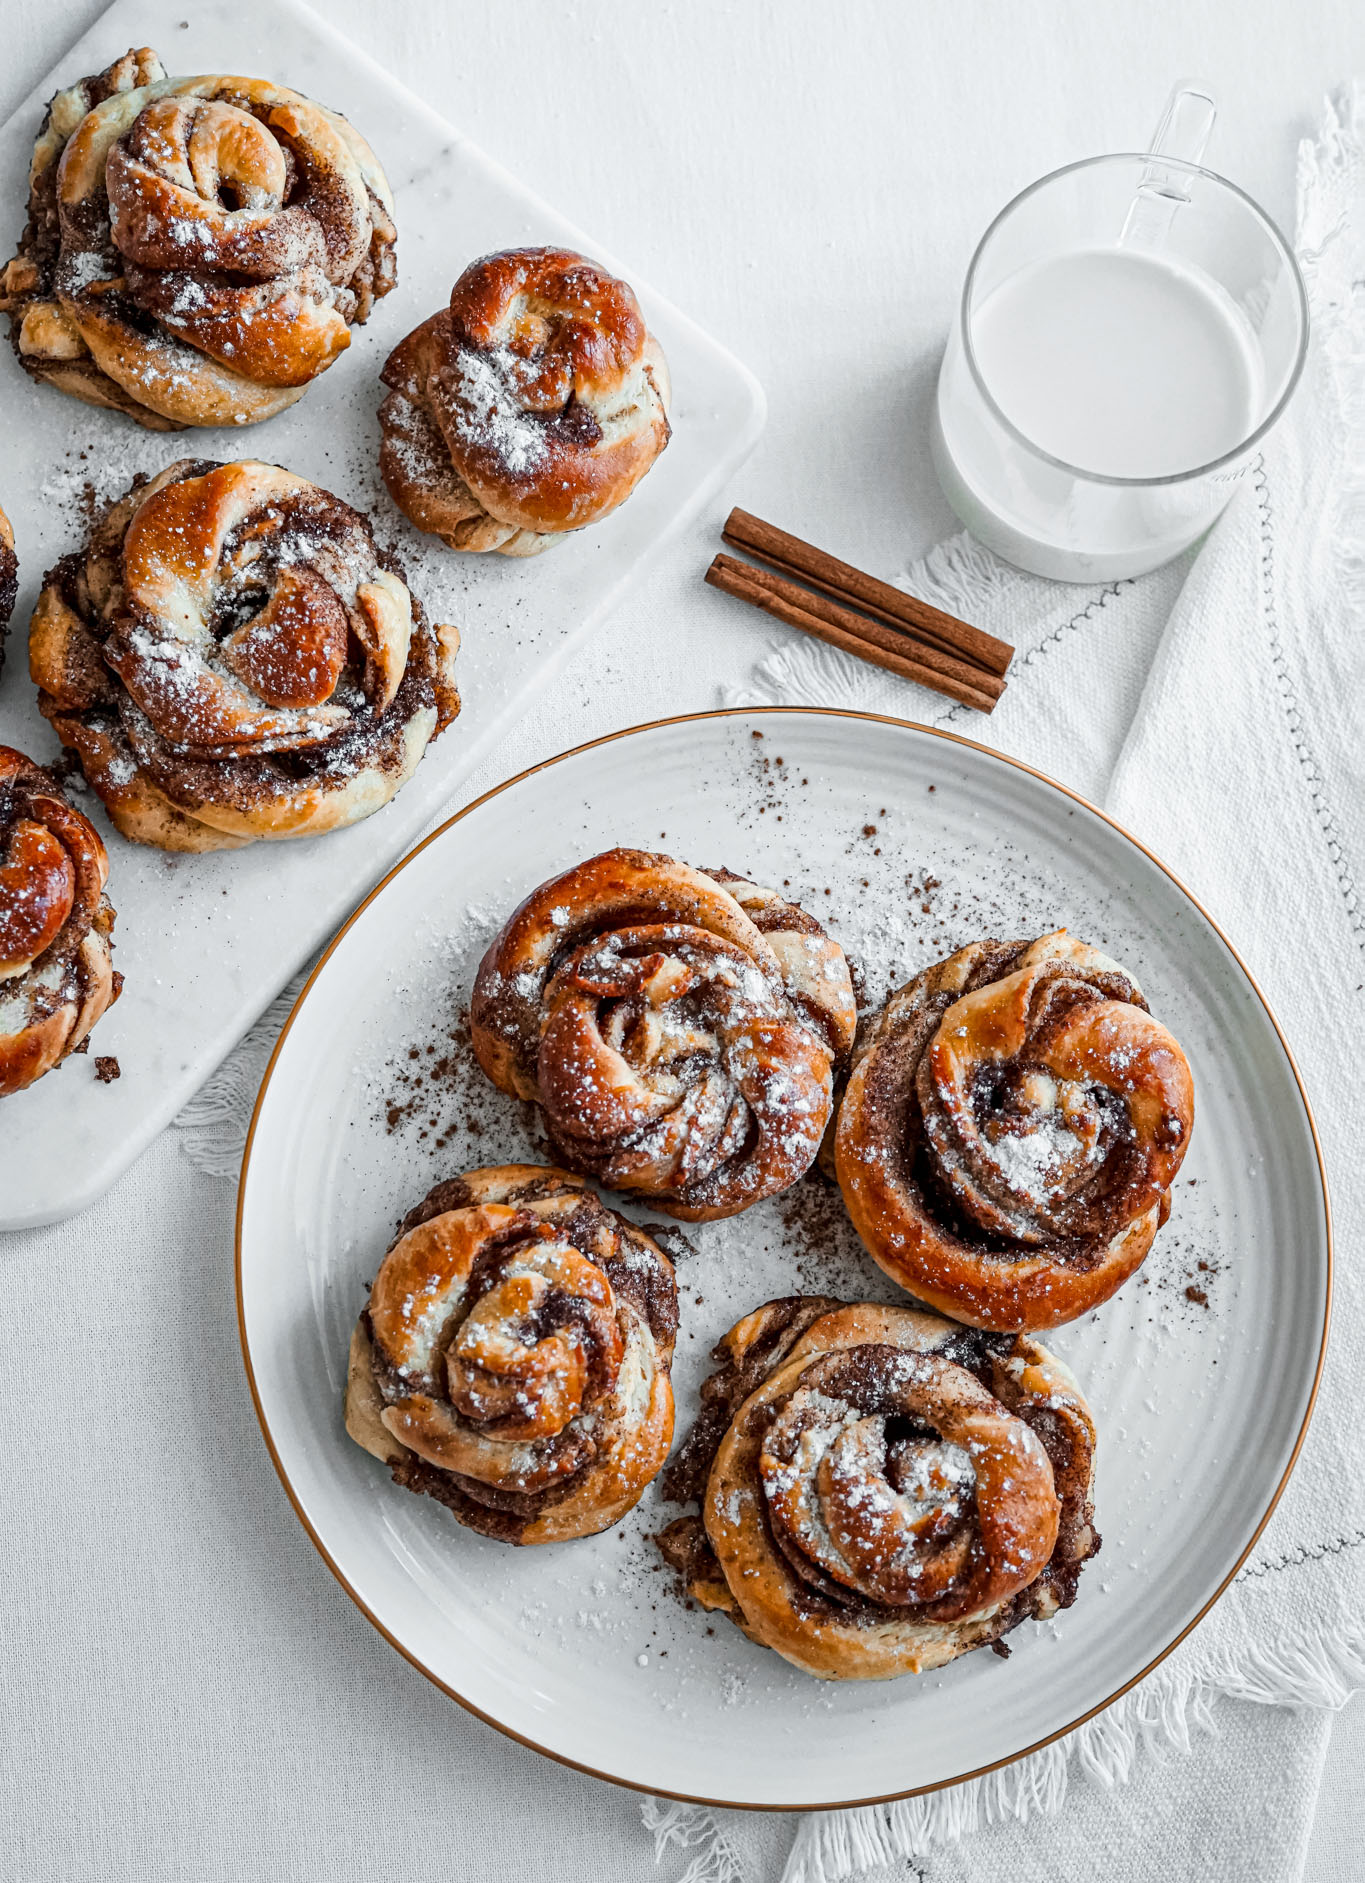 Kanelsnurrer-Cinnamon-twists-pastries-cinnamon-pastries-danish-pastries